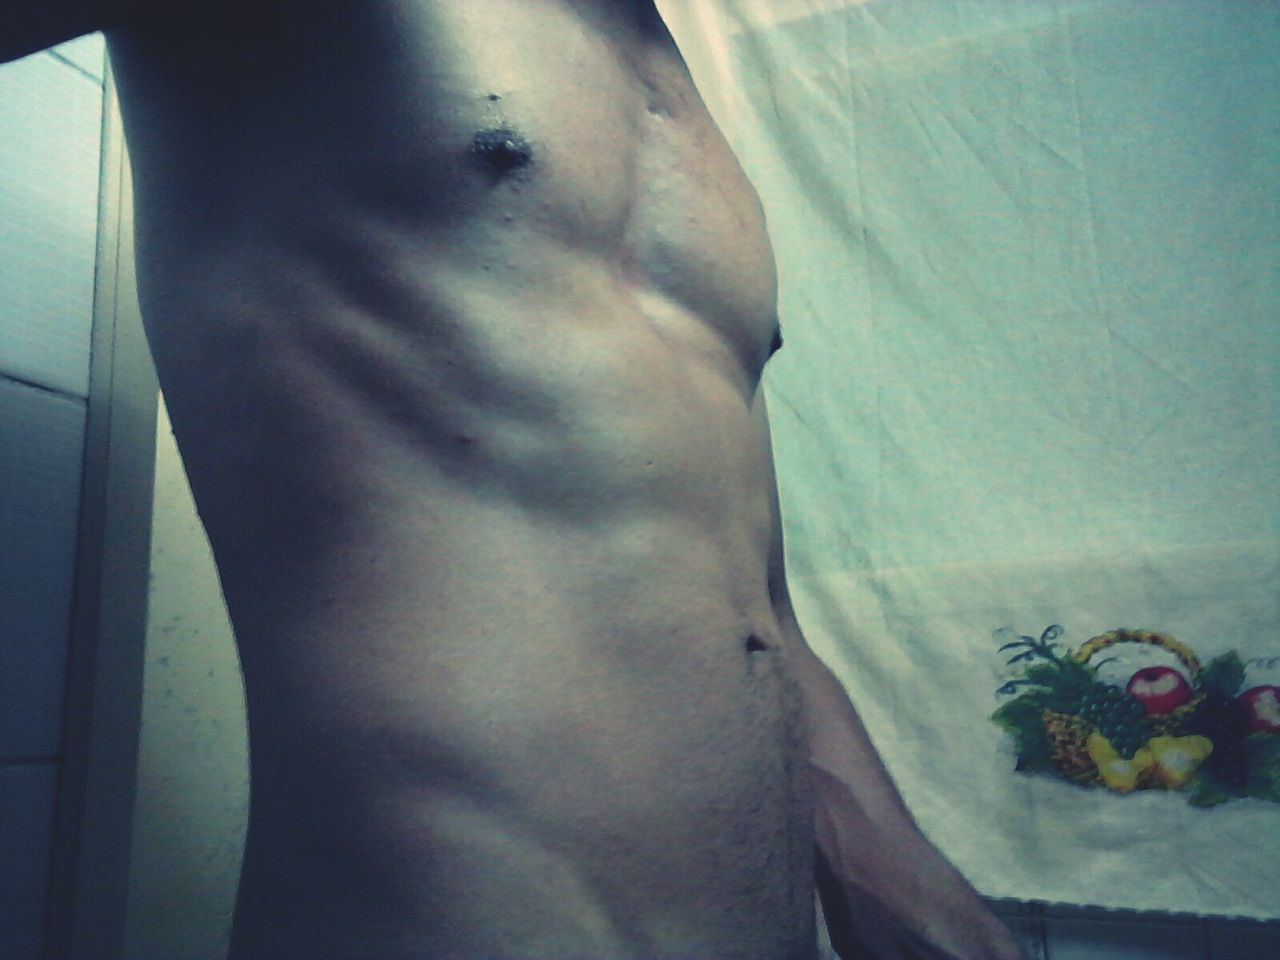 Taking Photos Hot Gaysexy Mybody Art  Guy Lookatme Sexyguy Vintage Photo Sexyboy That's Me Exposed